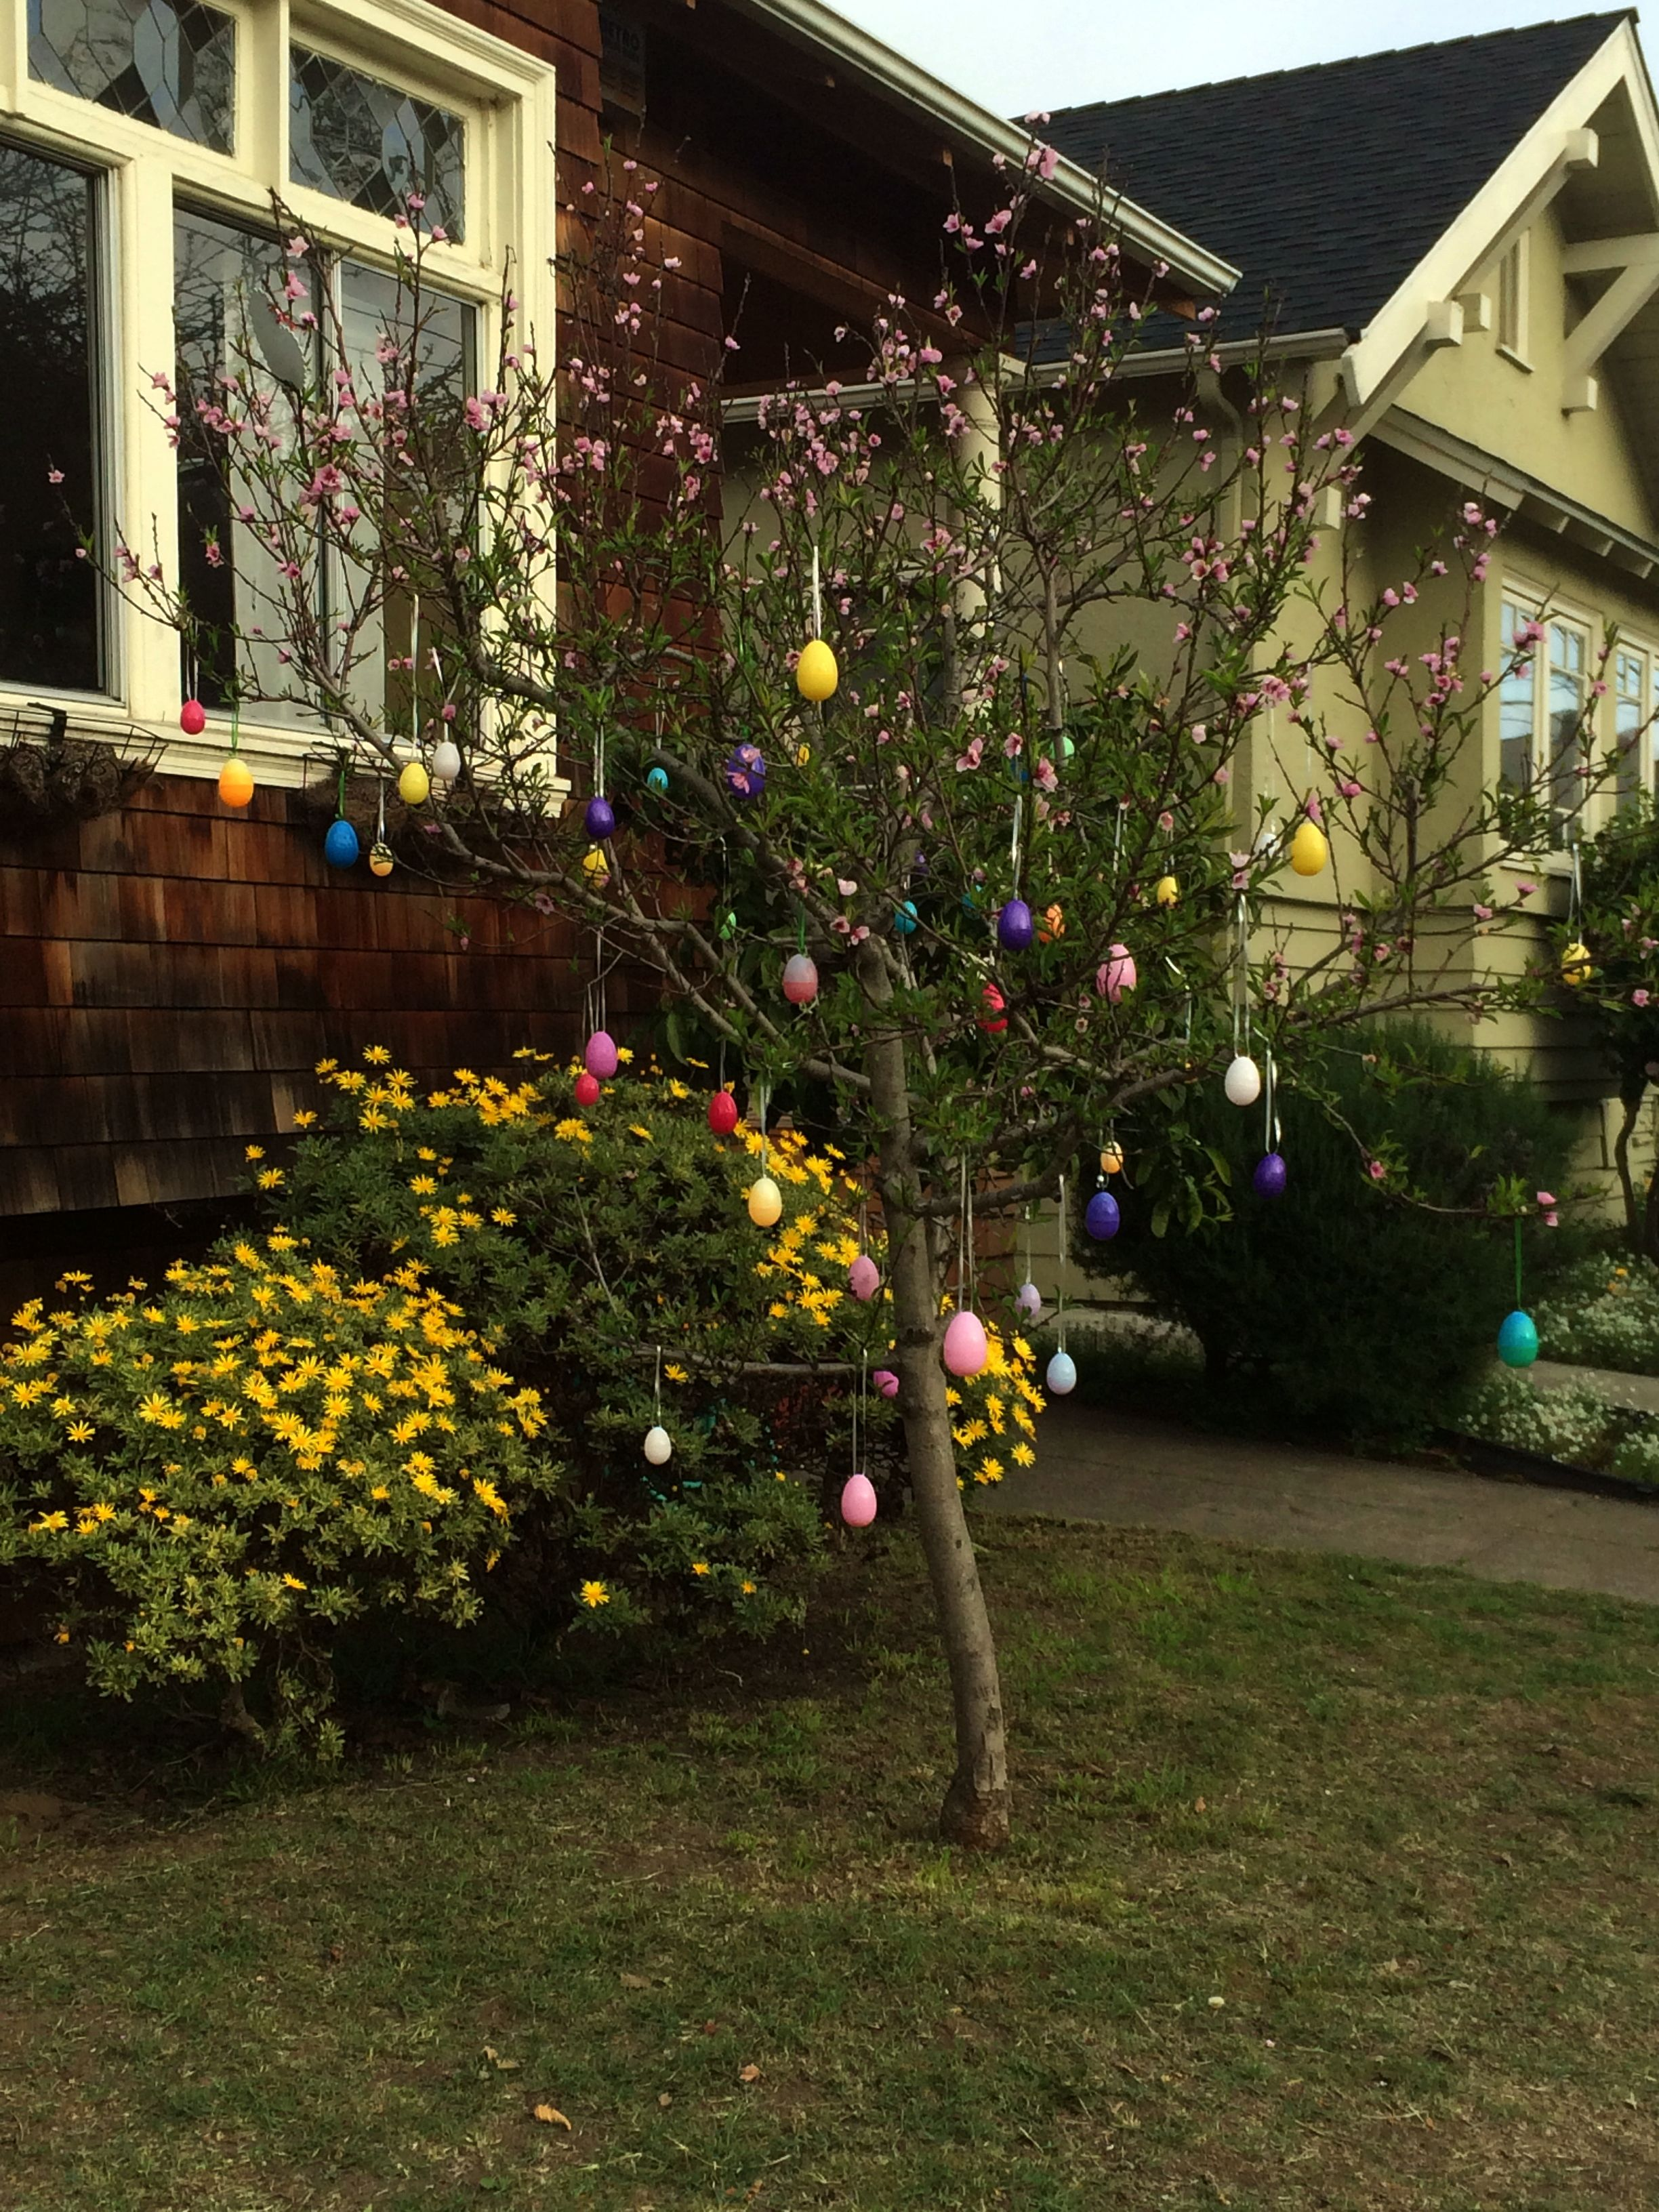 Great idea for the Easter Season.